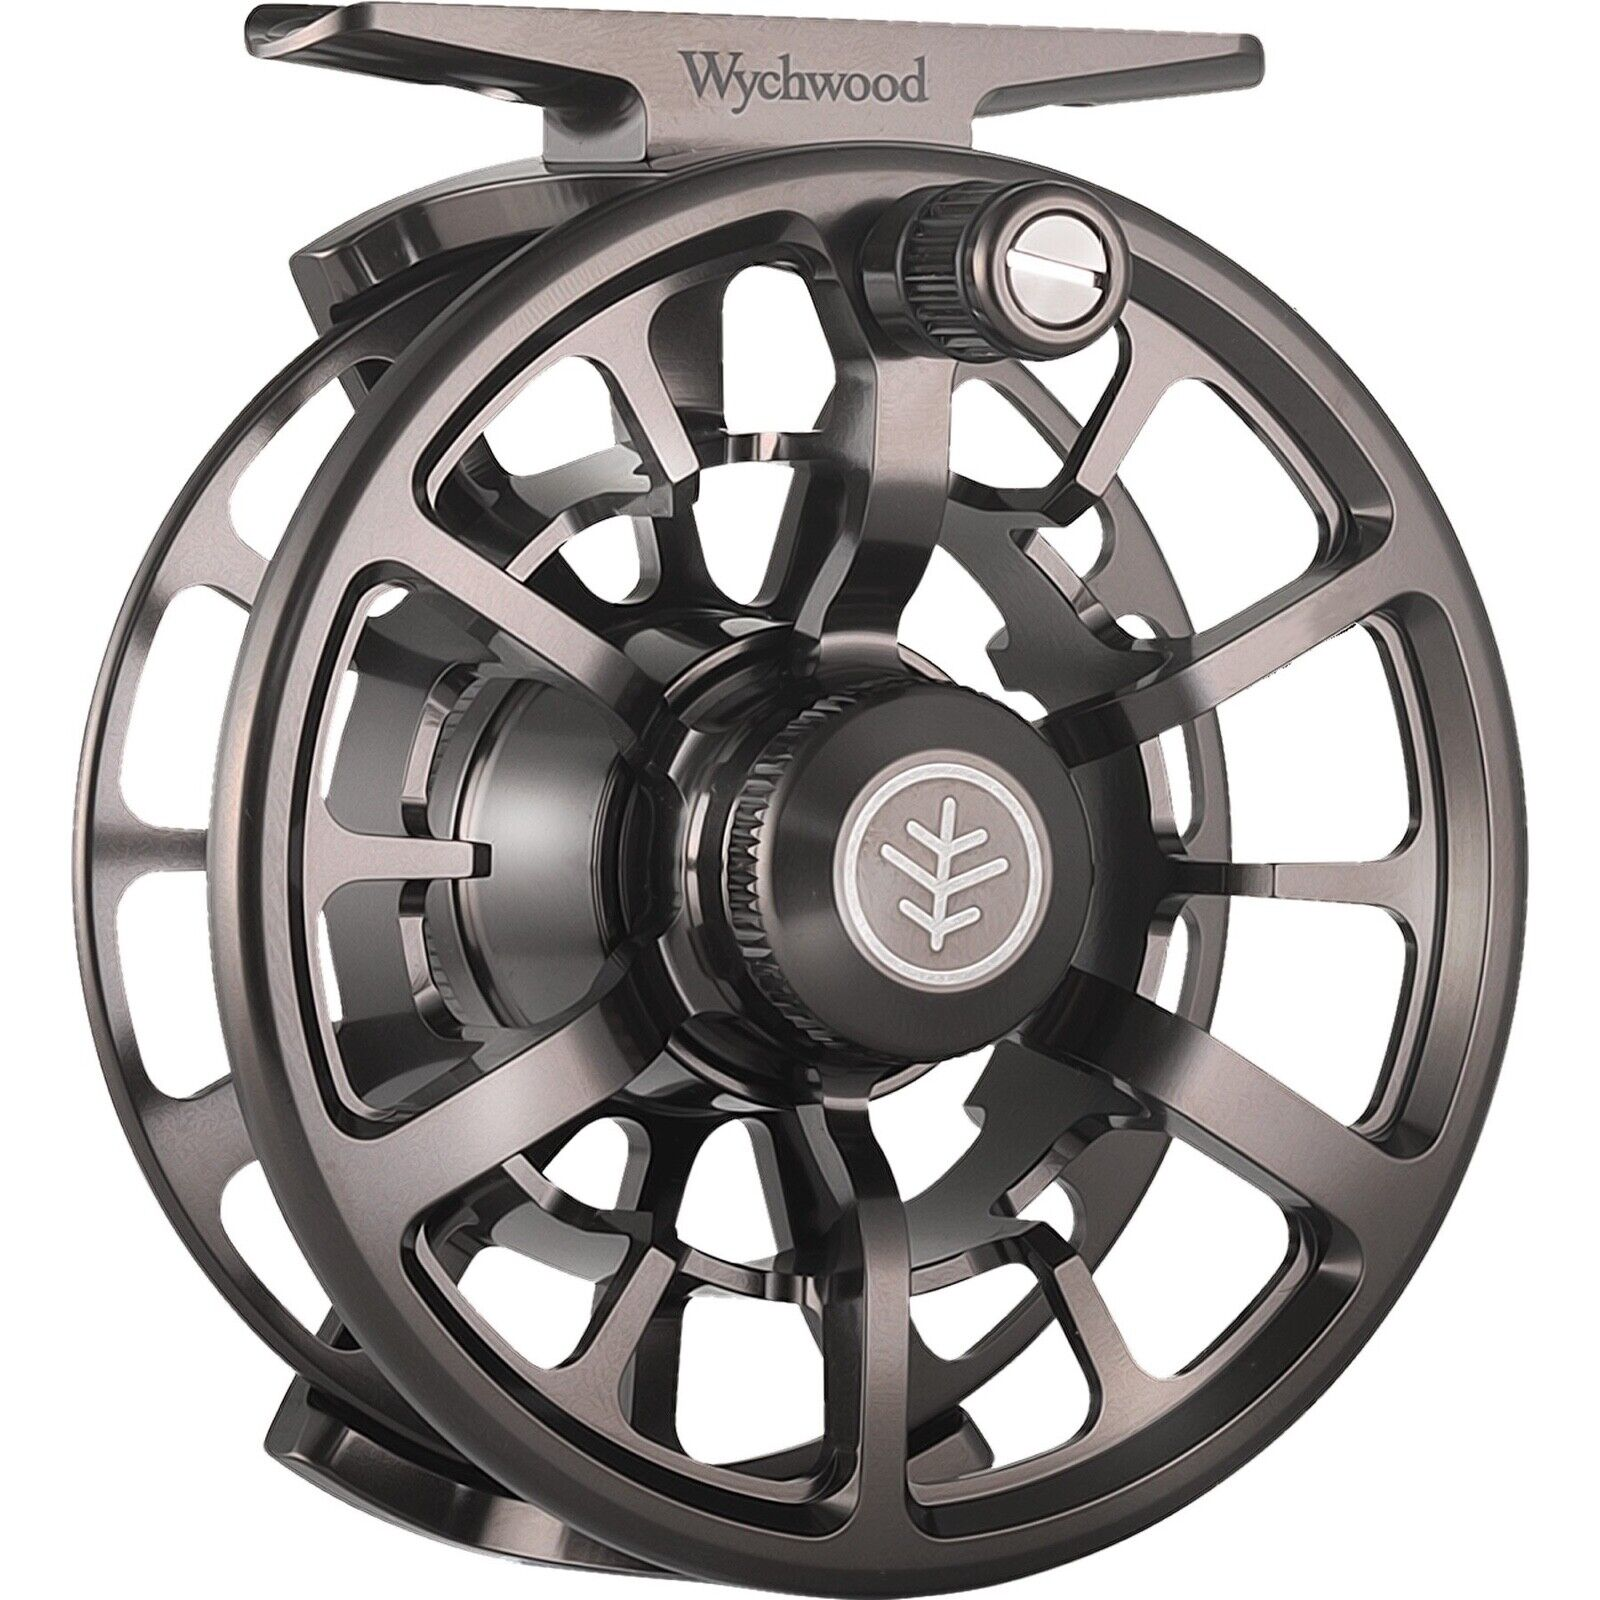 wychwood river and stream fly reel #2//3 Colour is gunmetal.